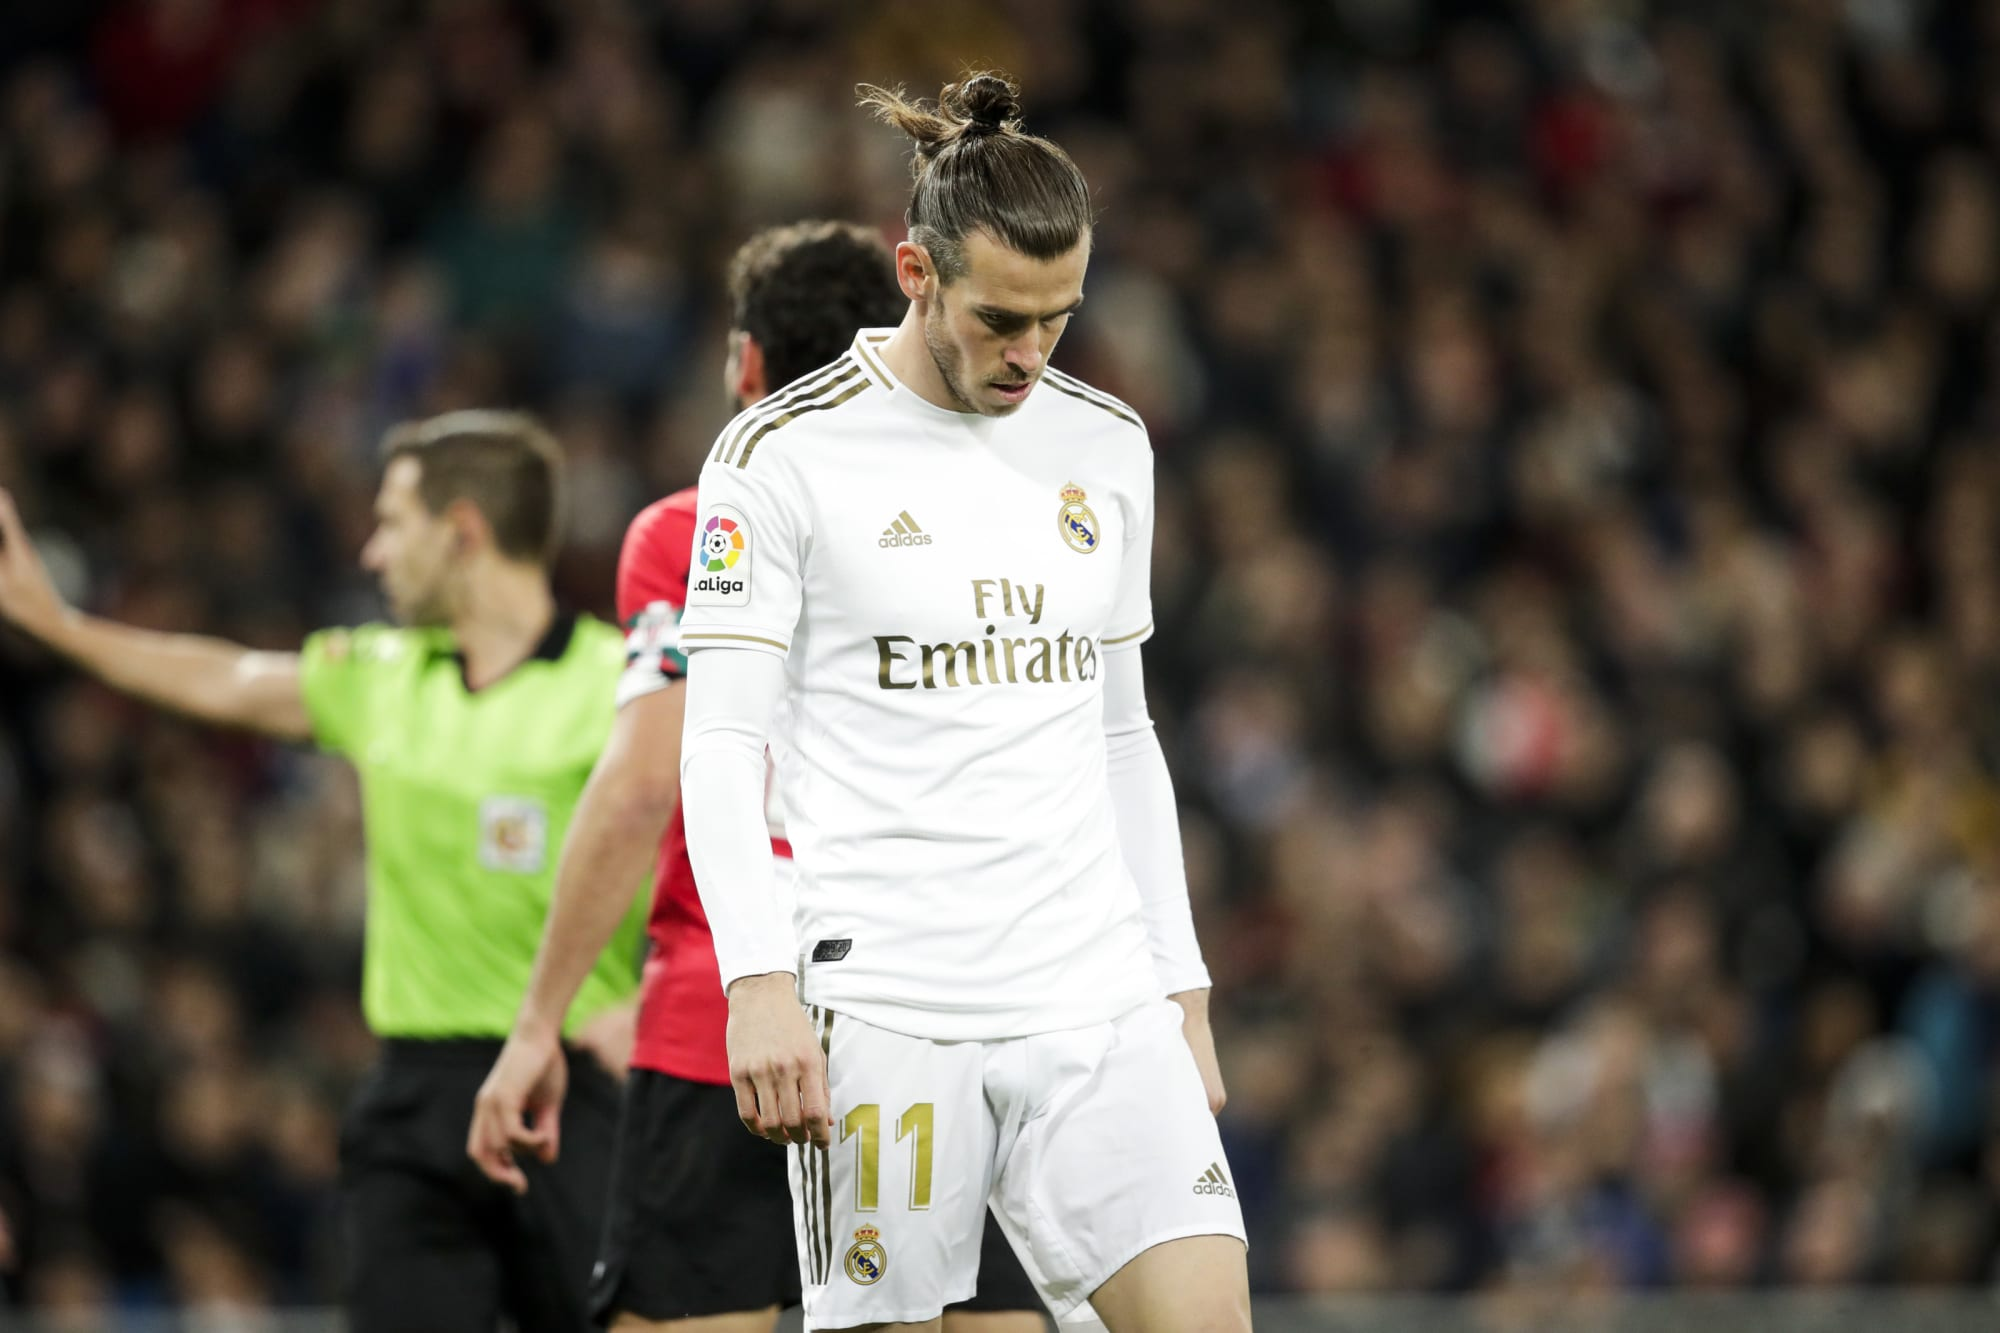 Real Madrid: The Gareth Bale situation might turn into a bigger disaster - The Real Champs